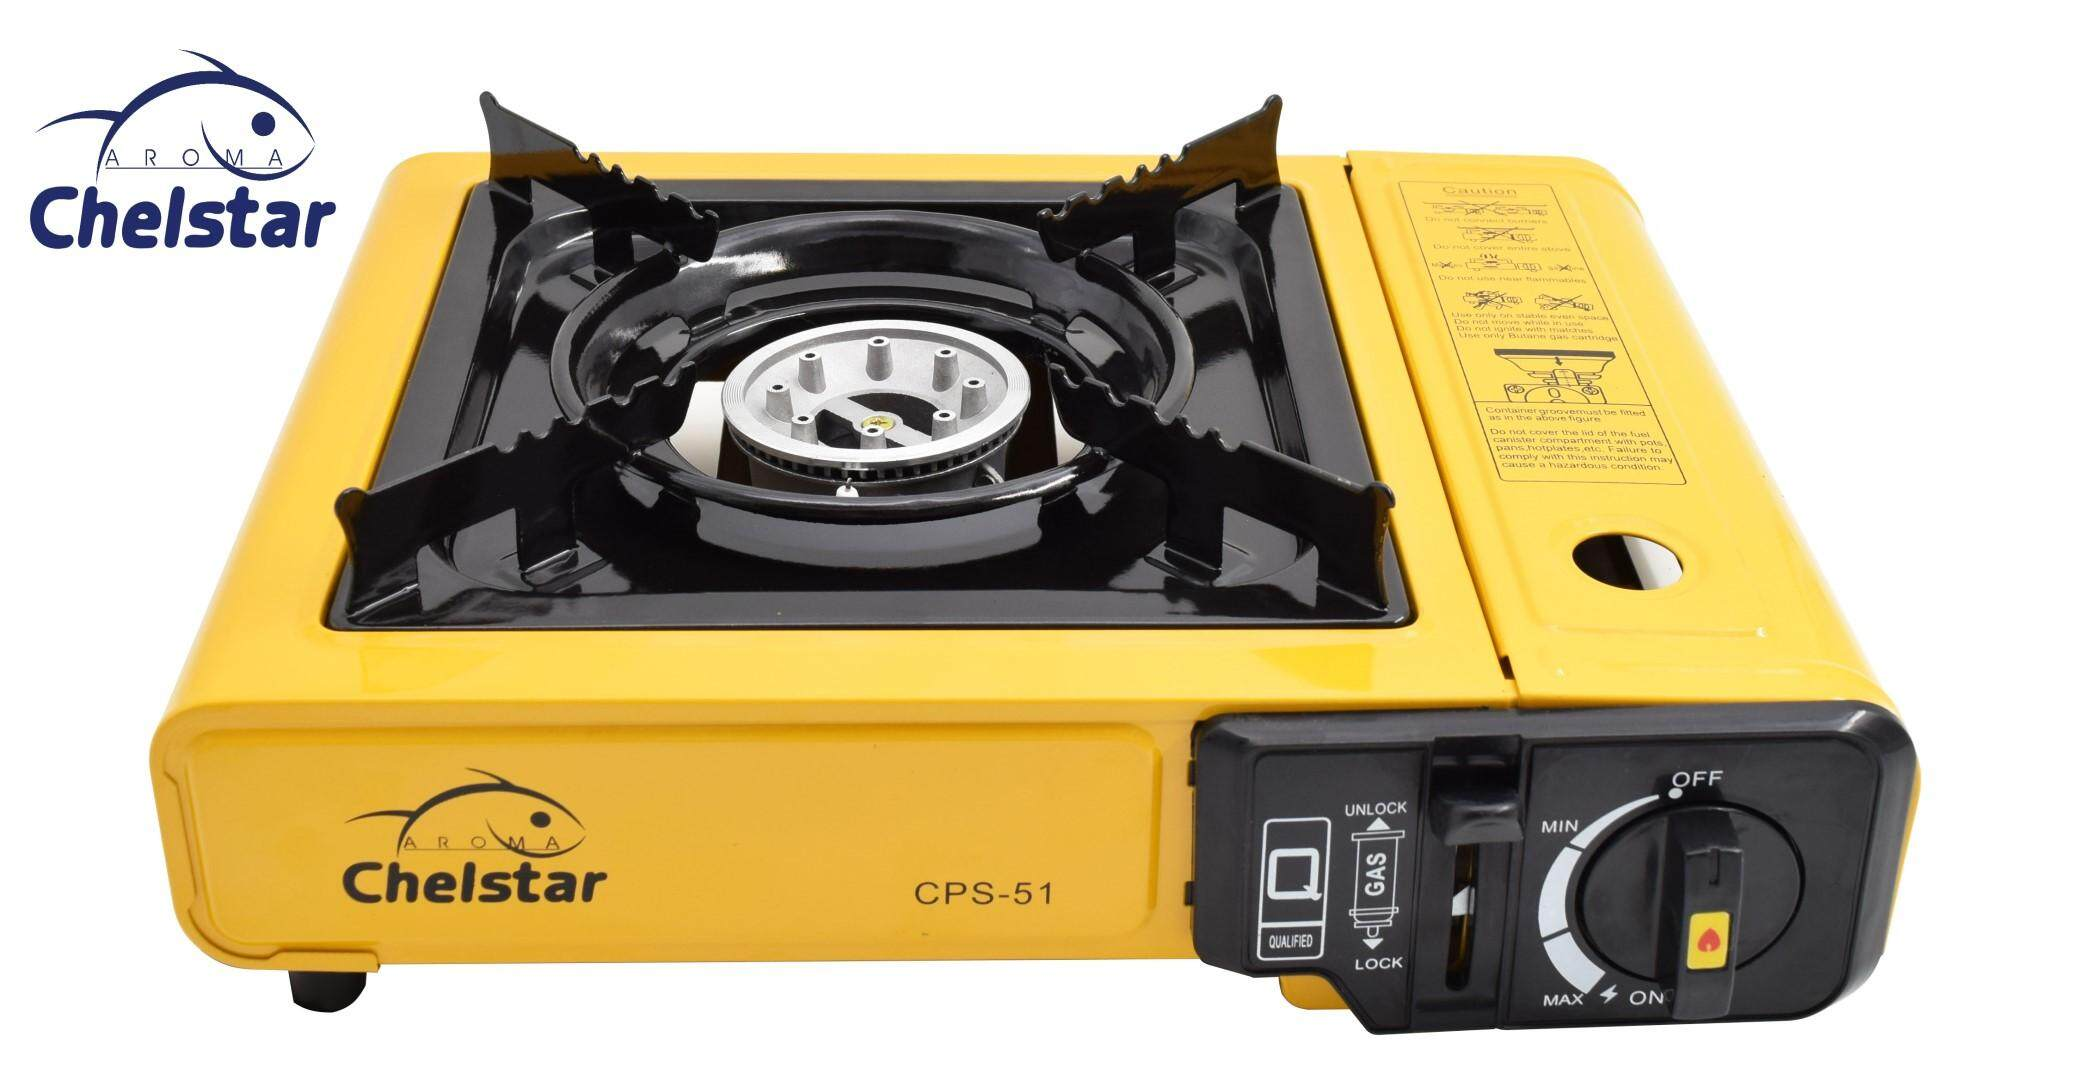 CHELSTAR Portable Gas Cooker Stove CPS-51